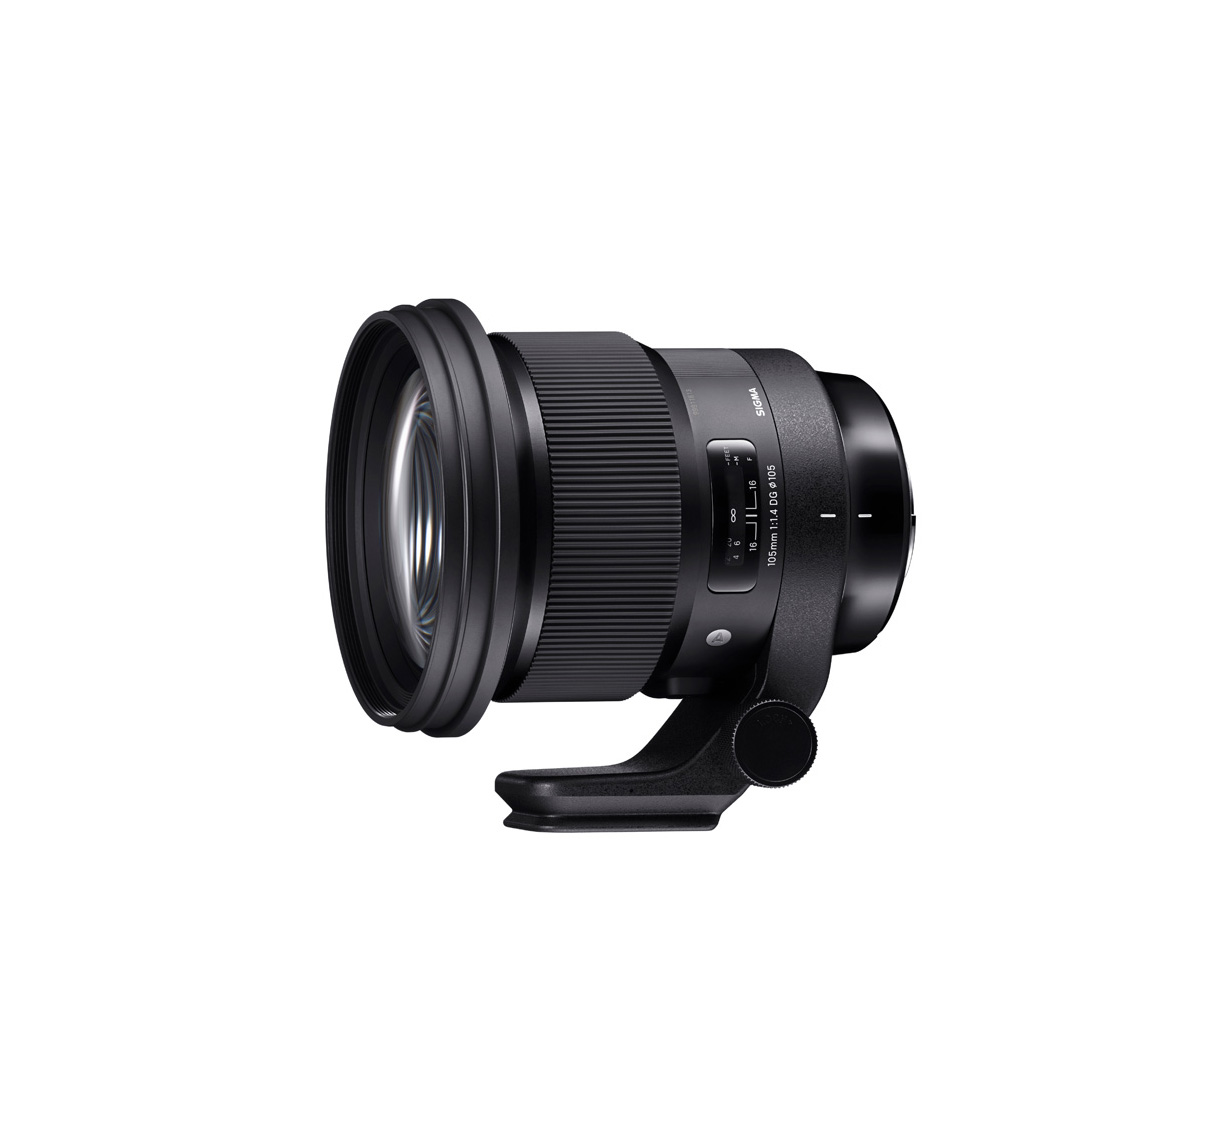 Sigma 105mm f/1.4 DG HSM Art for Canon